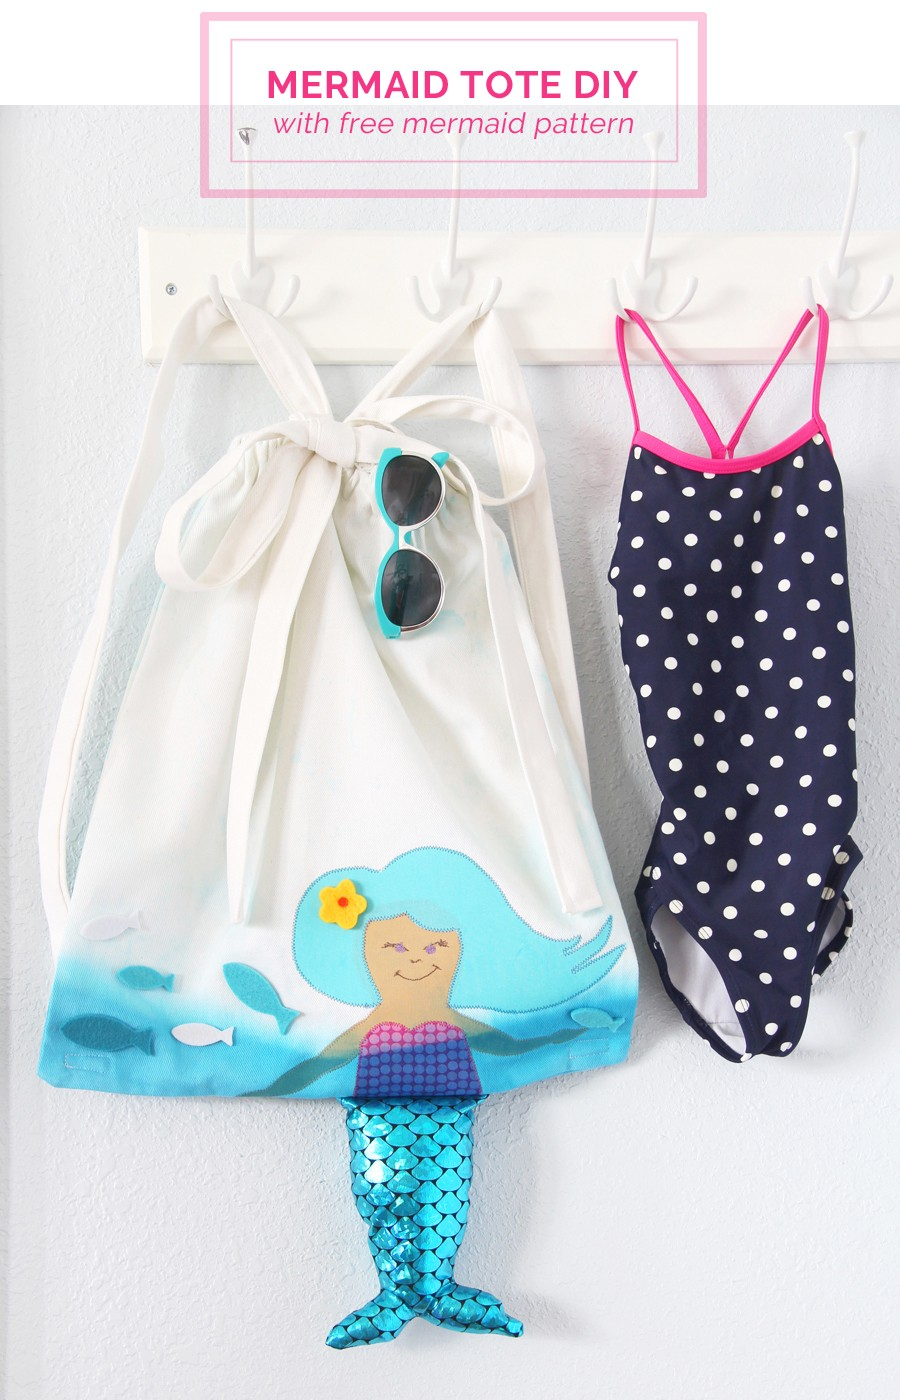 make your bag beach perfect this Summer with the free mermaid pattern!